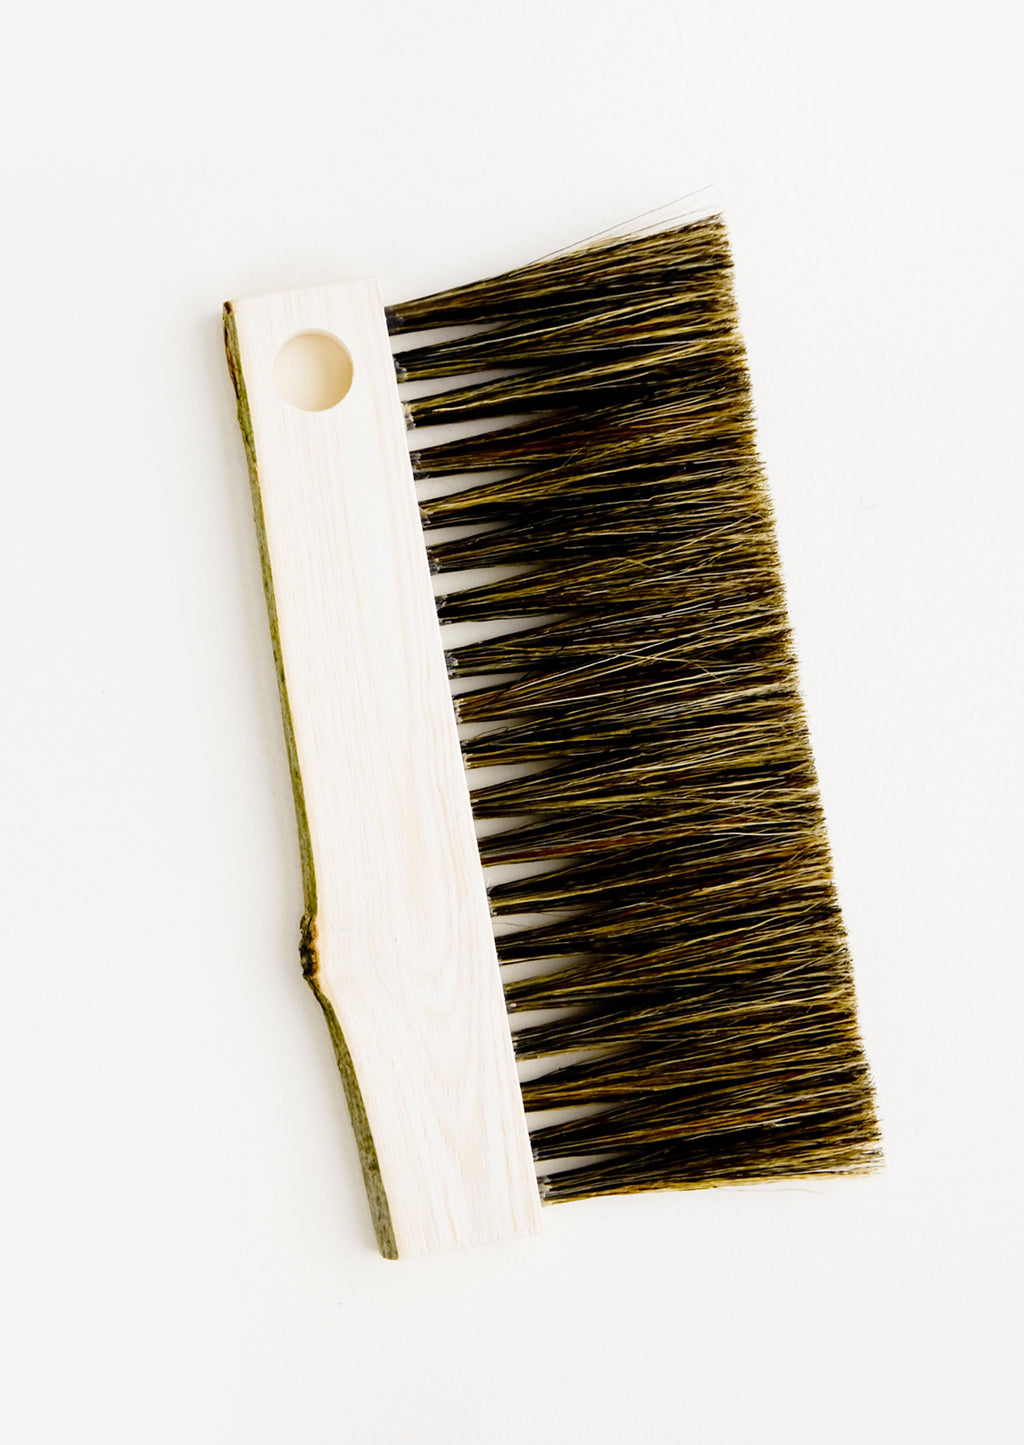 1: Drawing board bristle brush with bark-edged wooden handle and circular cutout for hanging